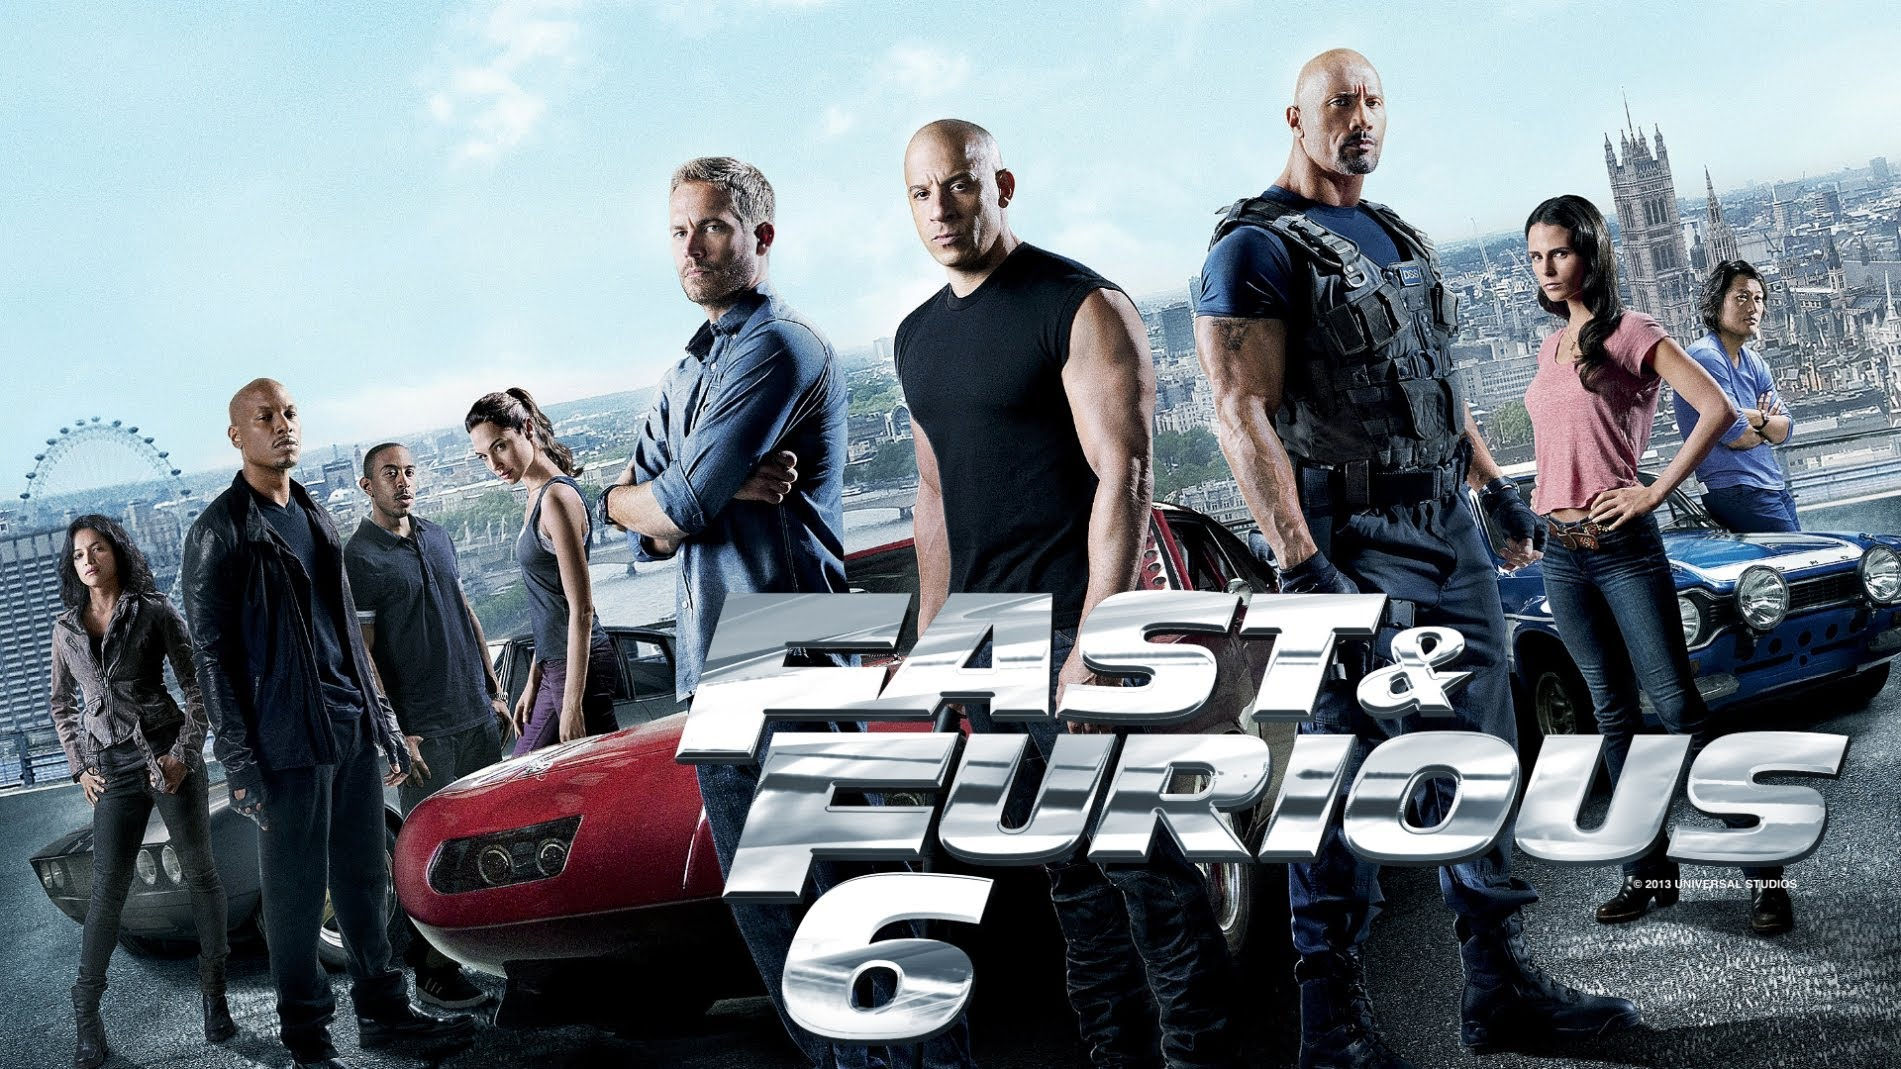 Fast & furious 6 wallpapers and background images stmed. Net.